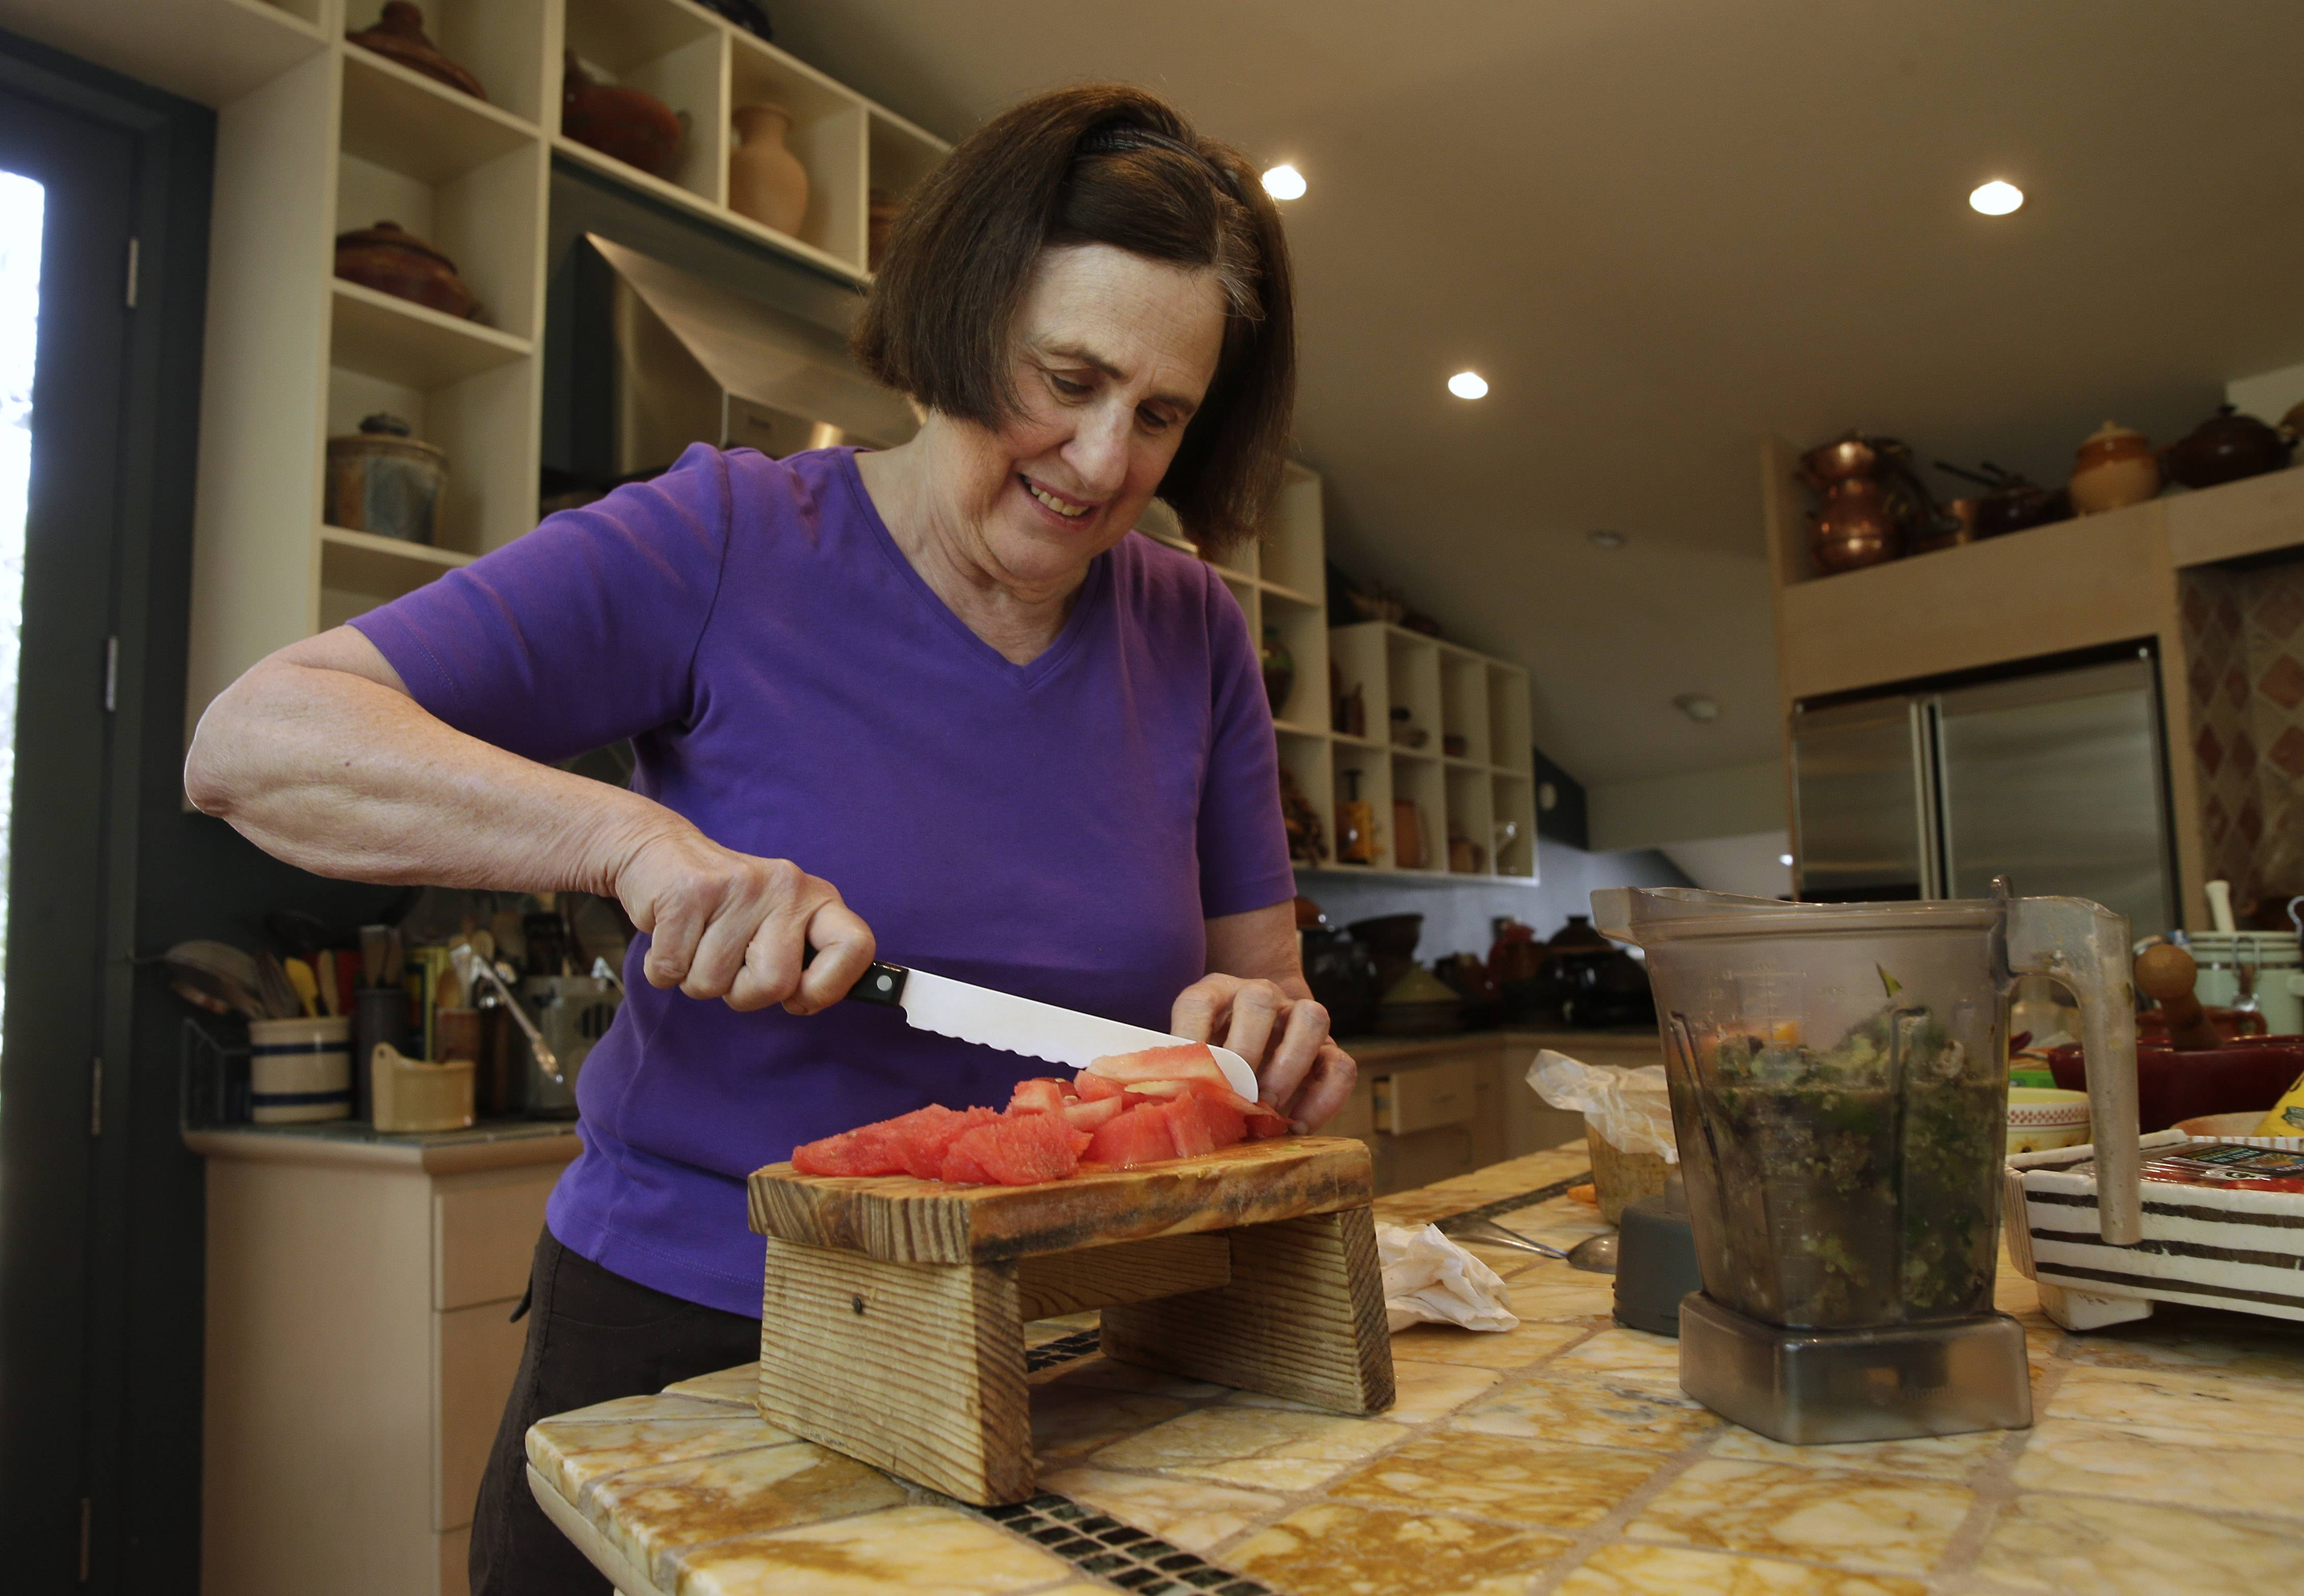 Cookbook author Paula Wolfert cuts up watermelon for use in a smoothie mix at her home in Sonoma, Calif.